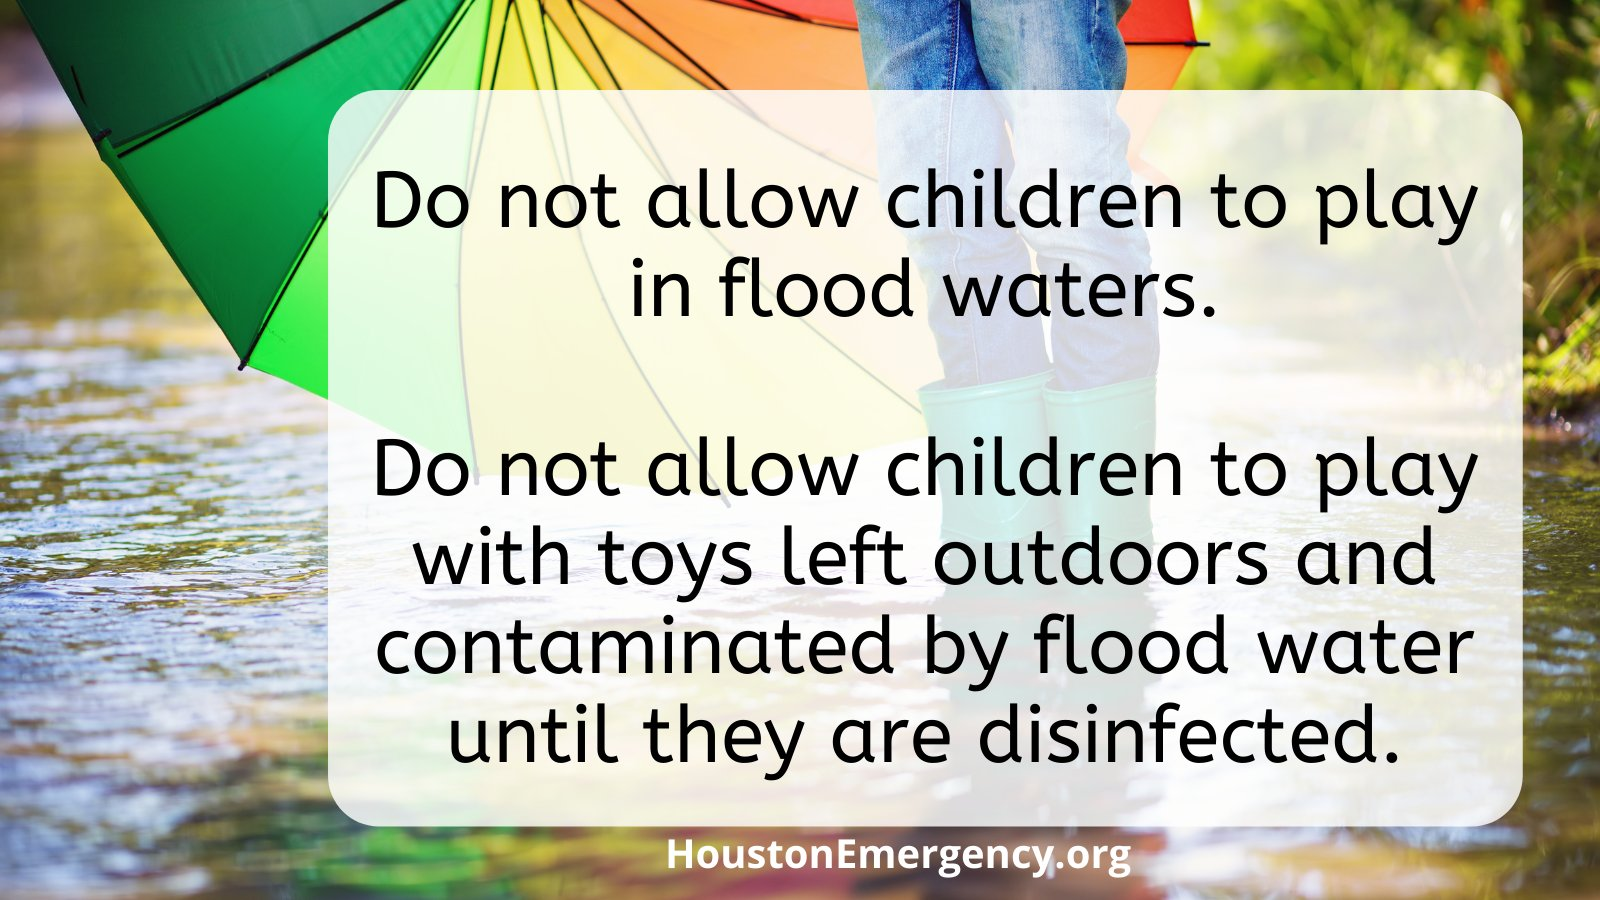 •Do not allow children to play in flood waters. •Do not allow children to play with toys left outdoors and contaminated by flood water until they are disinfected.